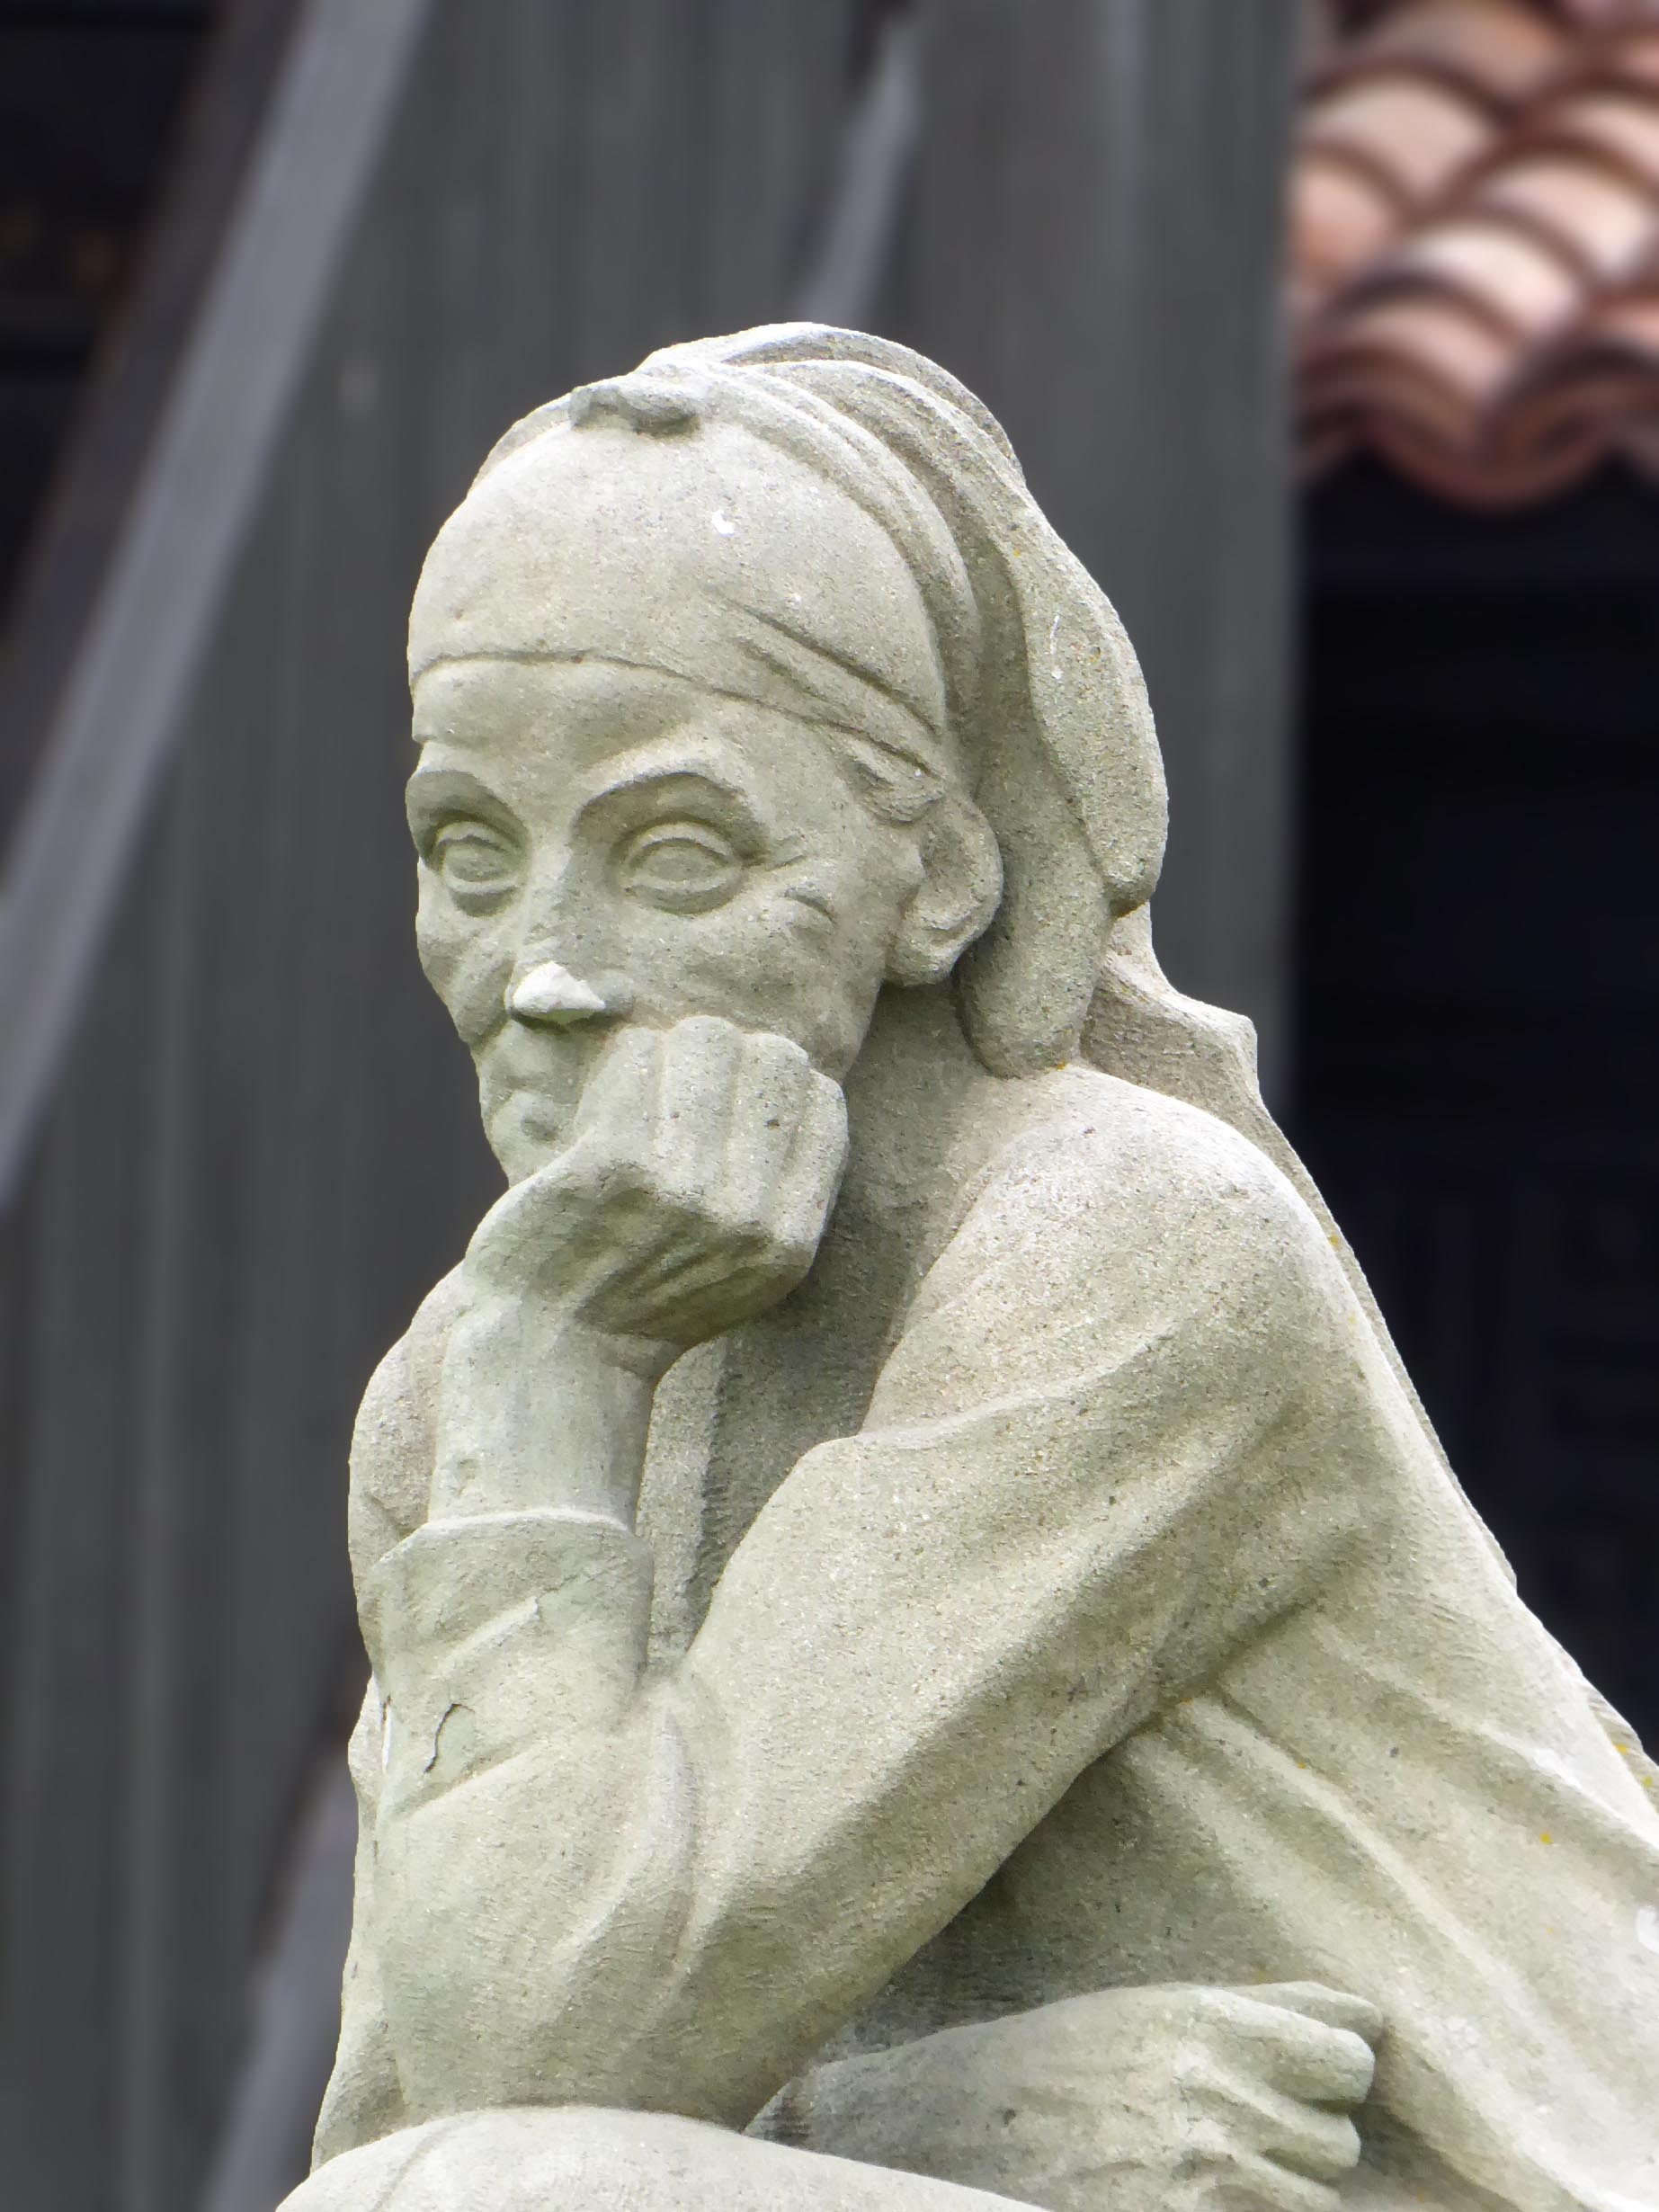 Statue of a woman resting her head on one hand